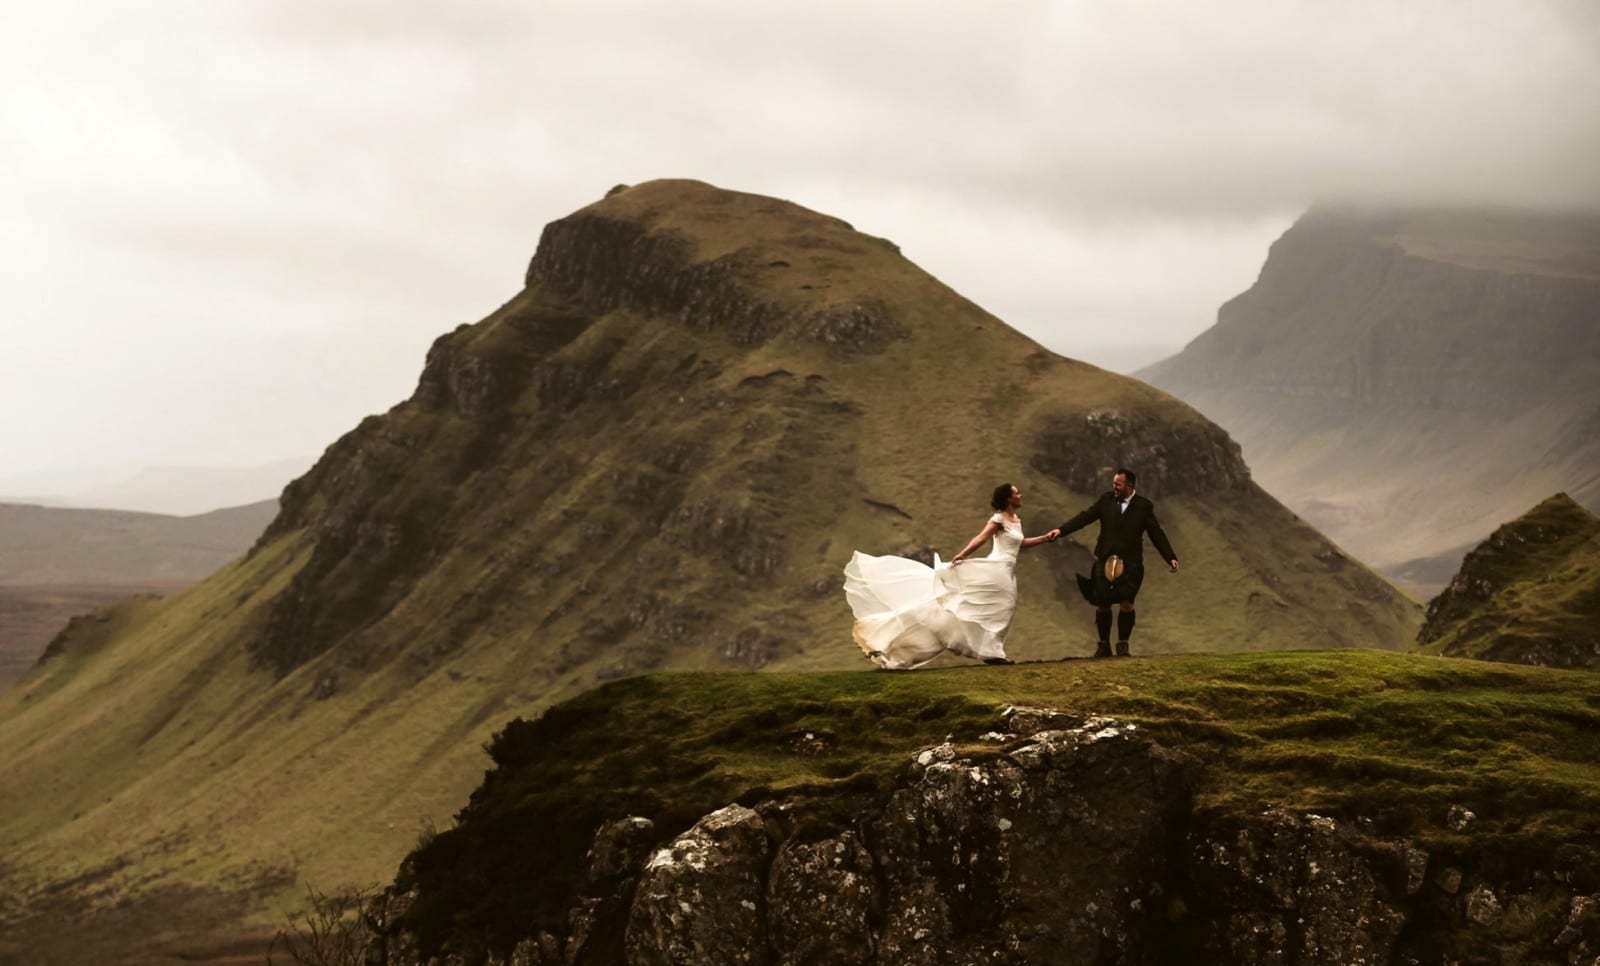 Daring Couple Hiked To The Top Of A Mountain On The Isle Of Skye To Tie The Knot